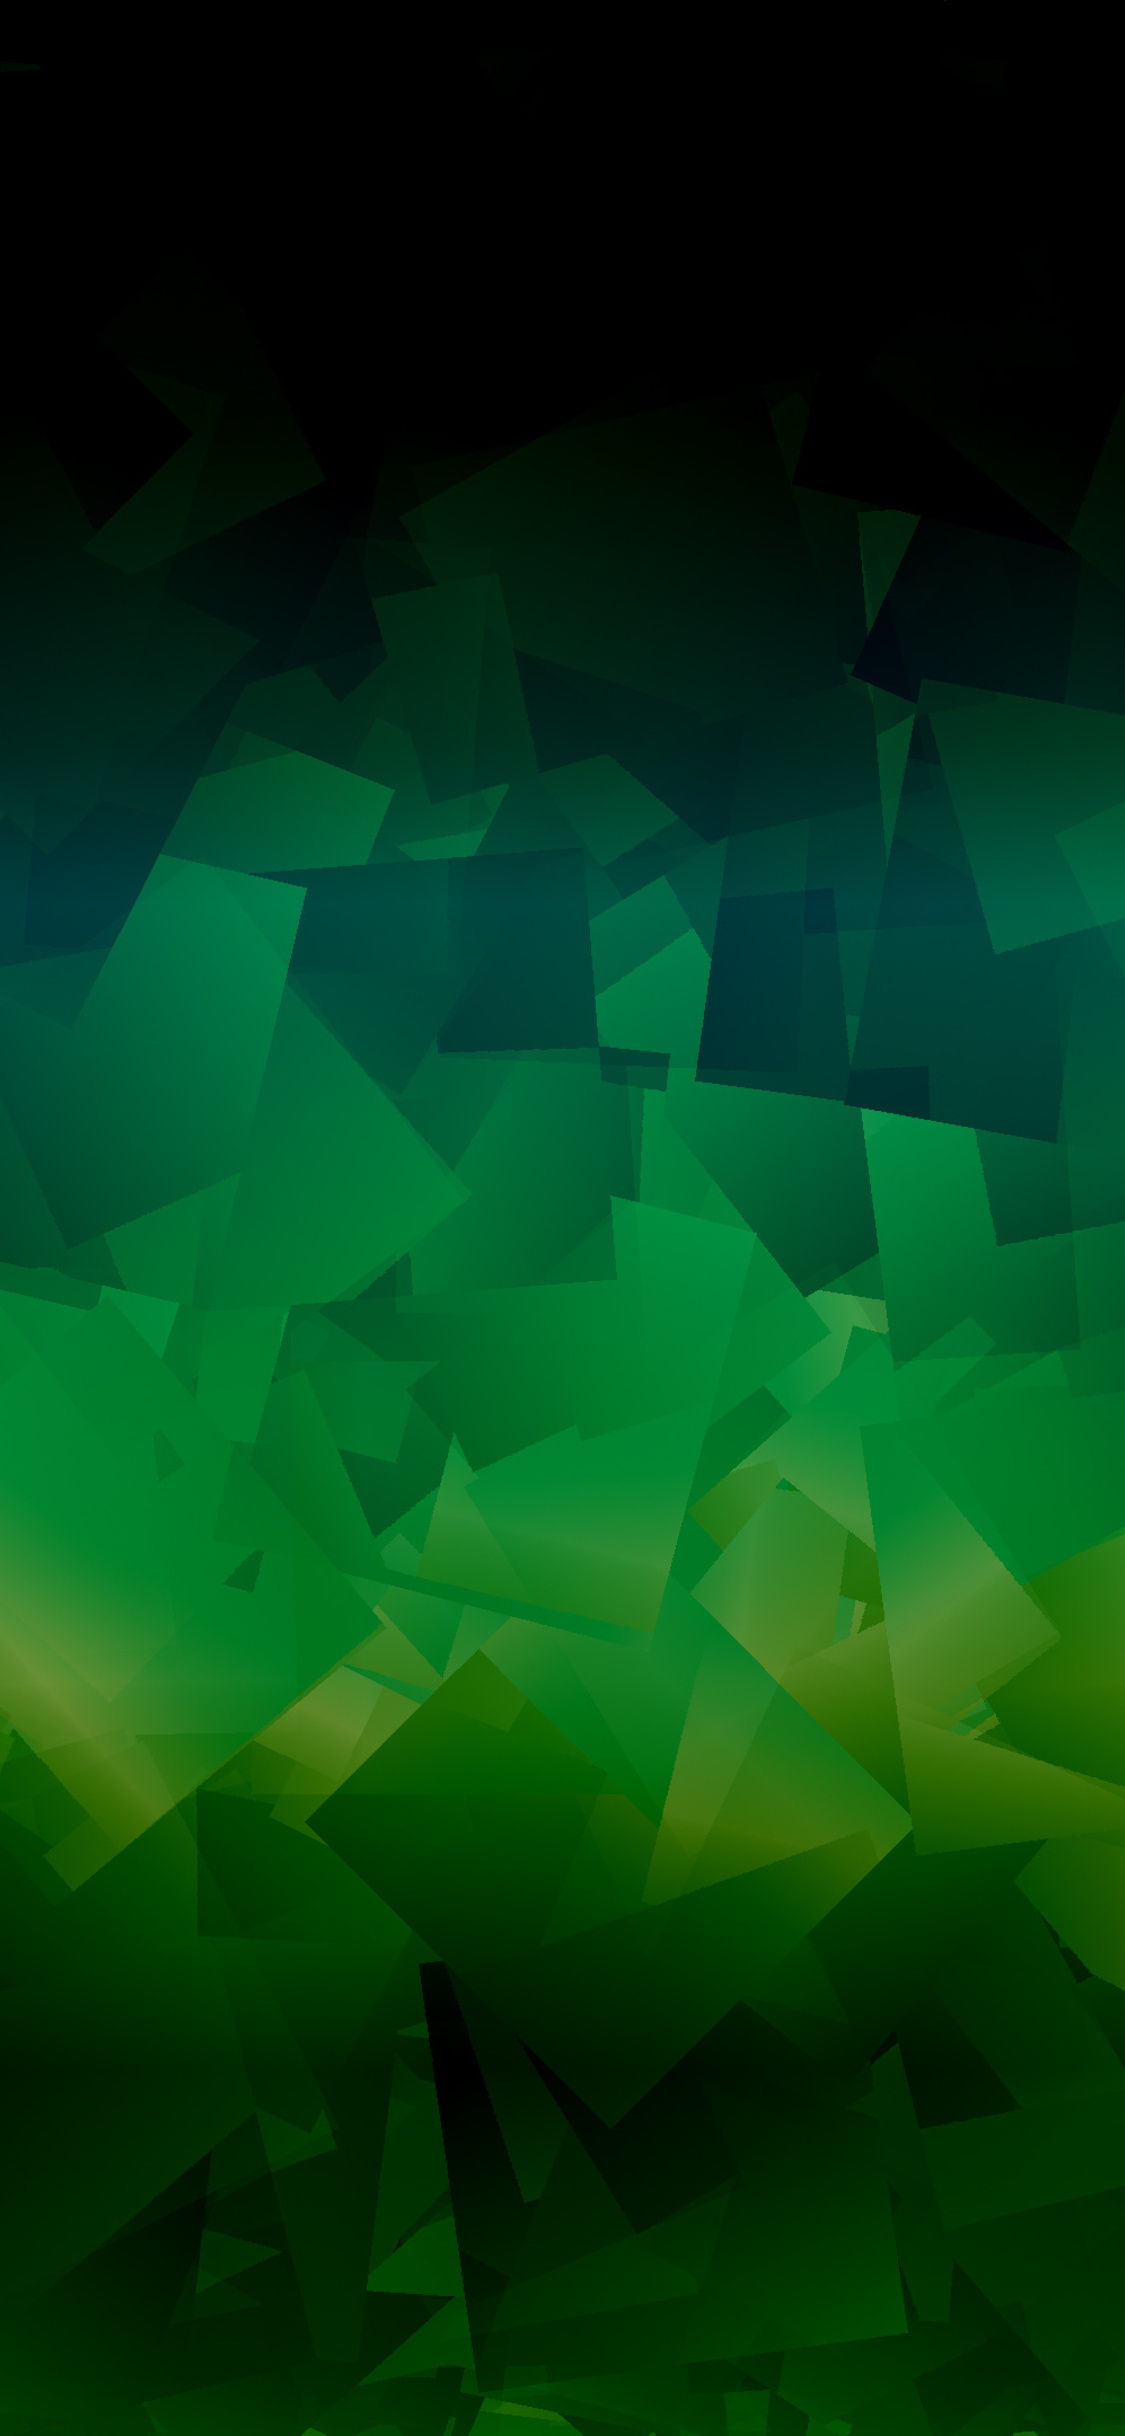 1125x2436 Dark Green Abstract Shapes 4k Iphone XS,Iphone ...